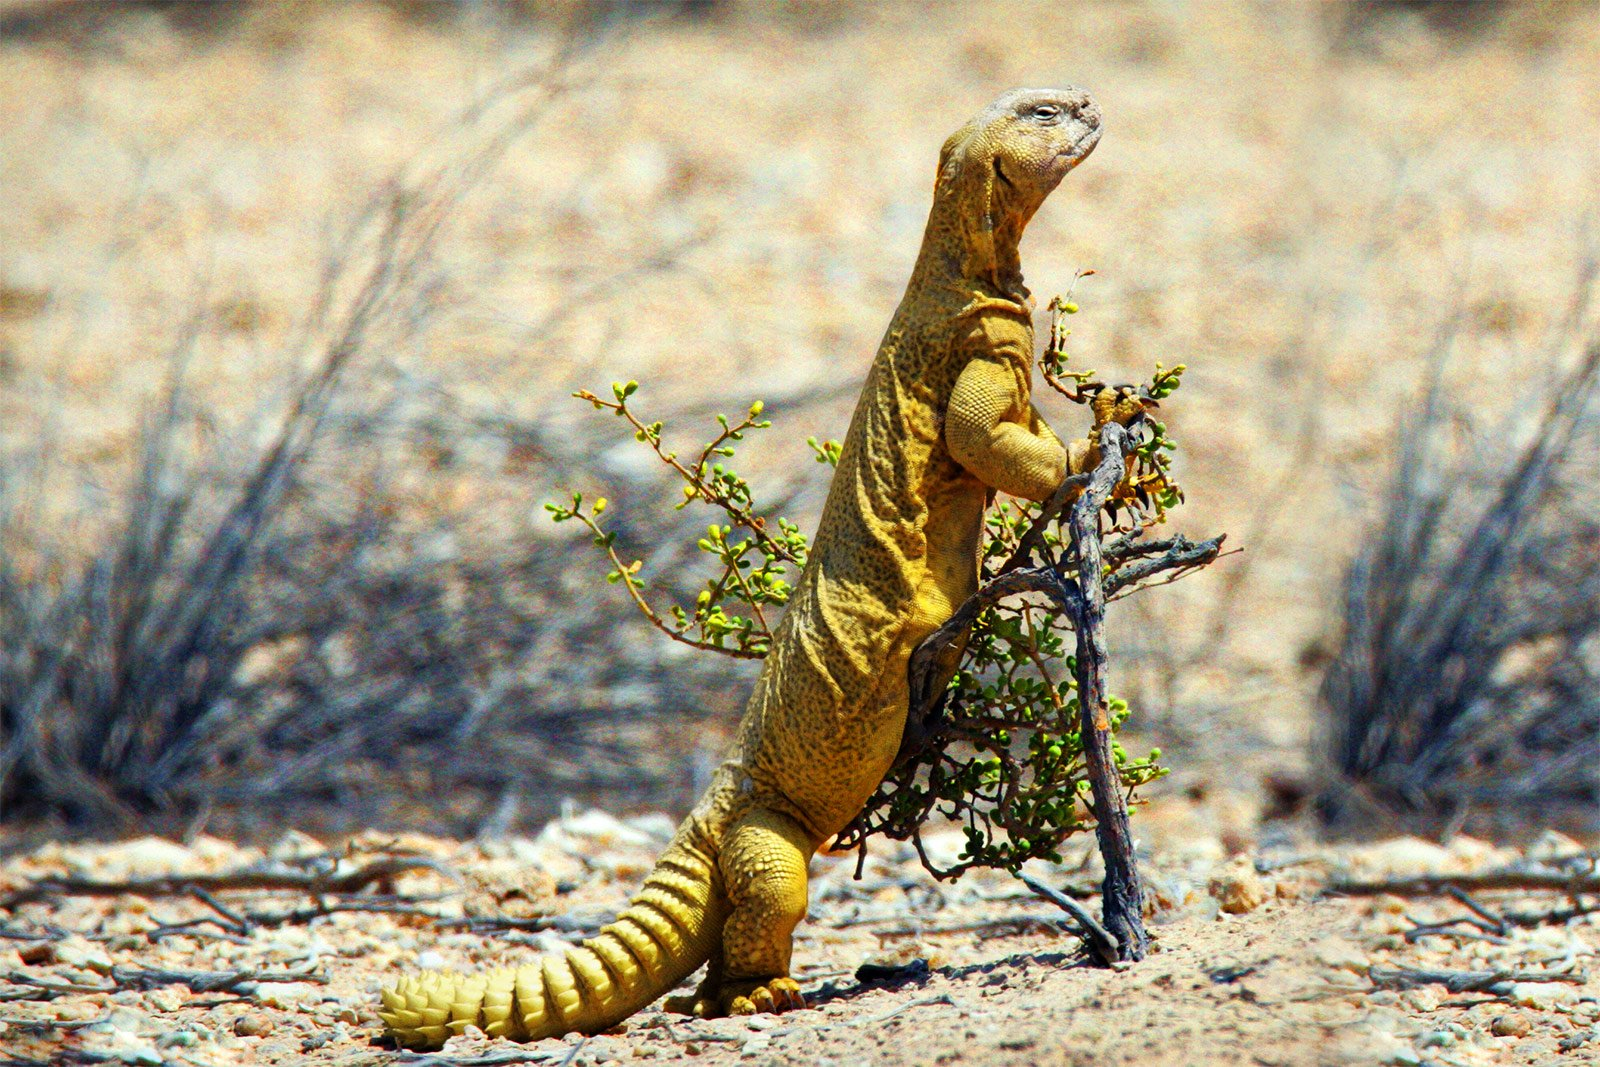 How to see uromastyx in Dubai